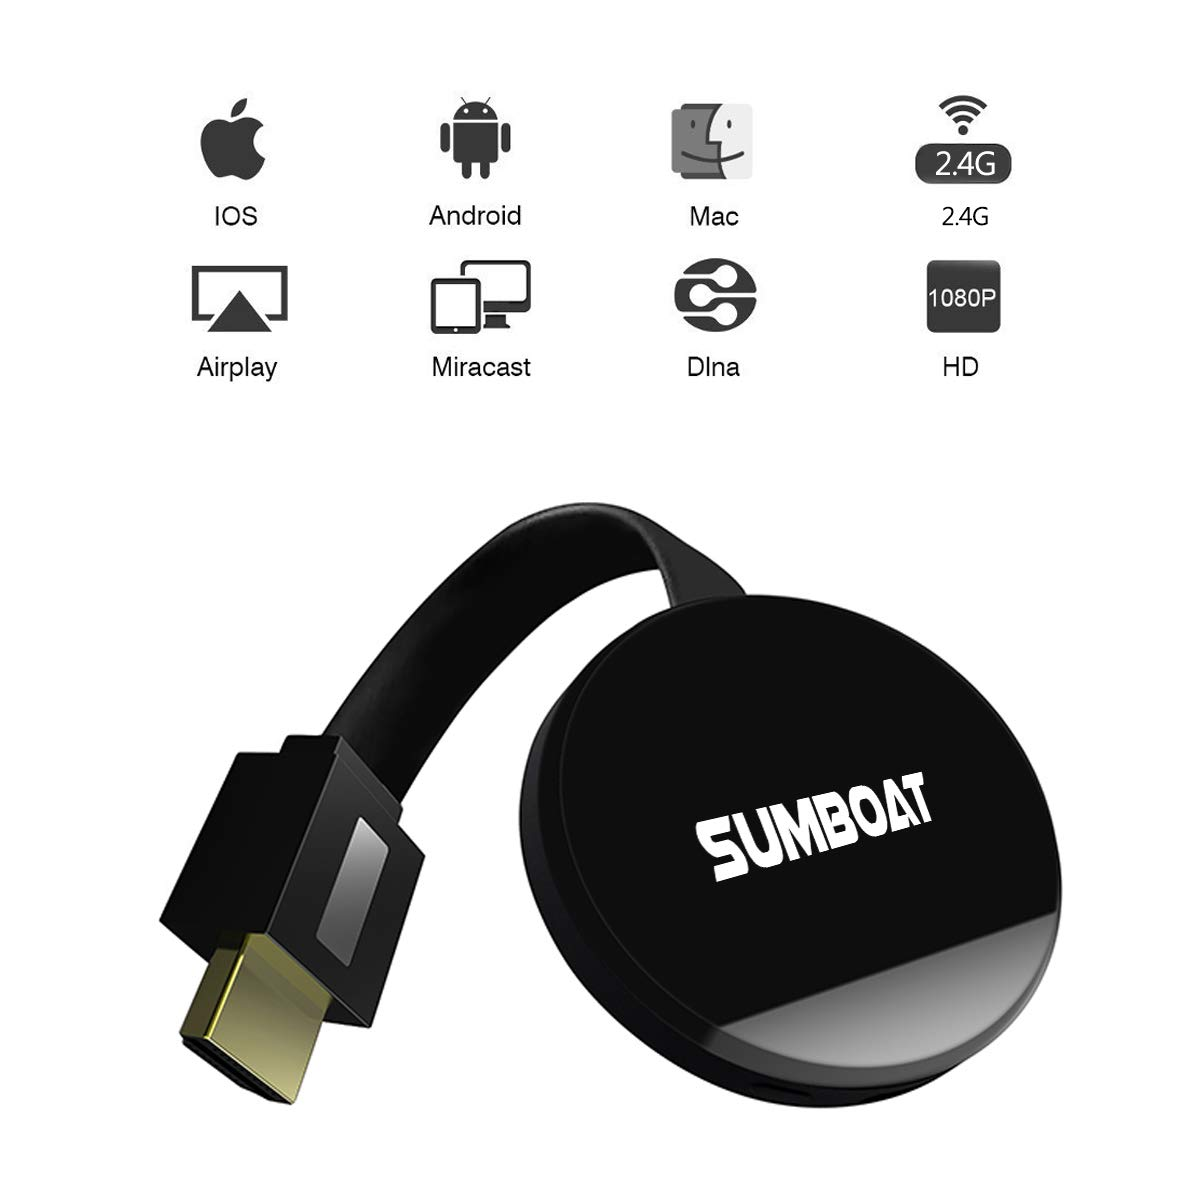 SUMBOAT WiFi Display Dongle Ligthning Wireless Screen Share HDMI 1080P TV Stick Converter Adapter for Streaming Video Picture Files Support DLNA AirPlay Miracast(Black)